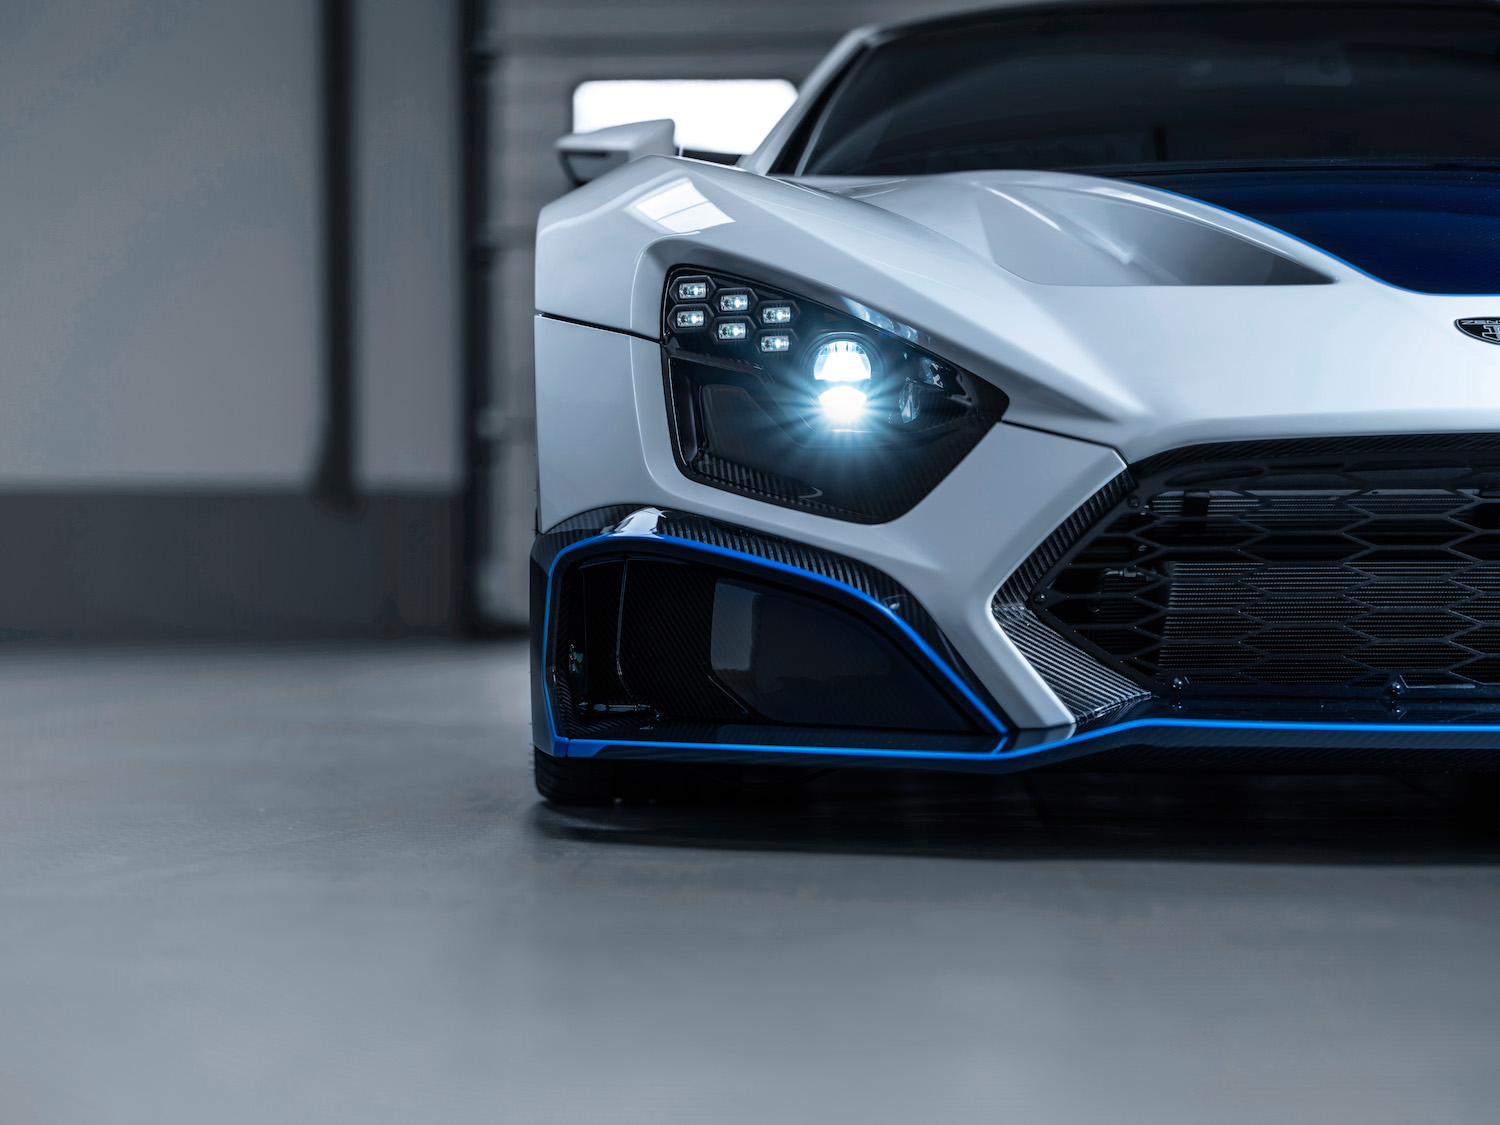 Zenvo tsr-s supercar front half headlight